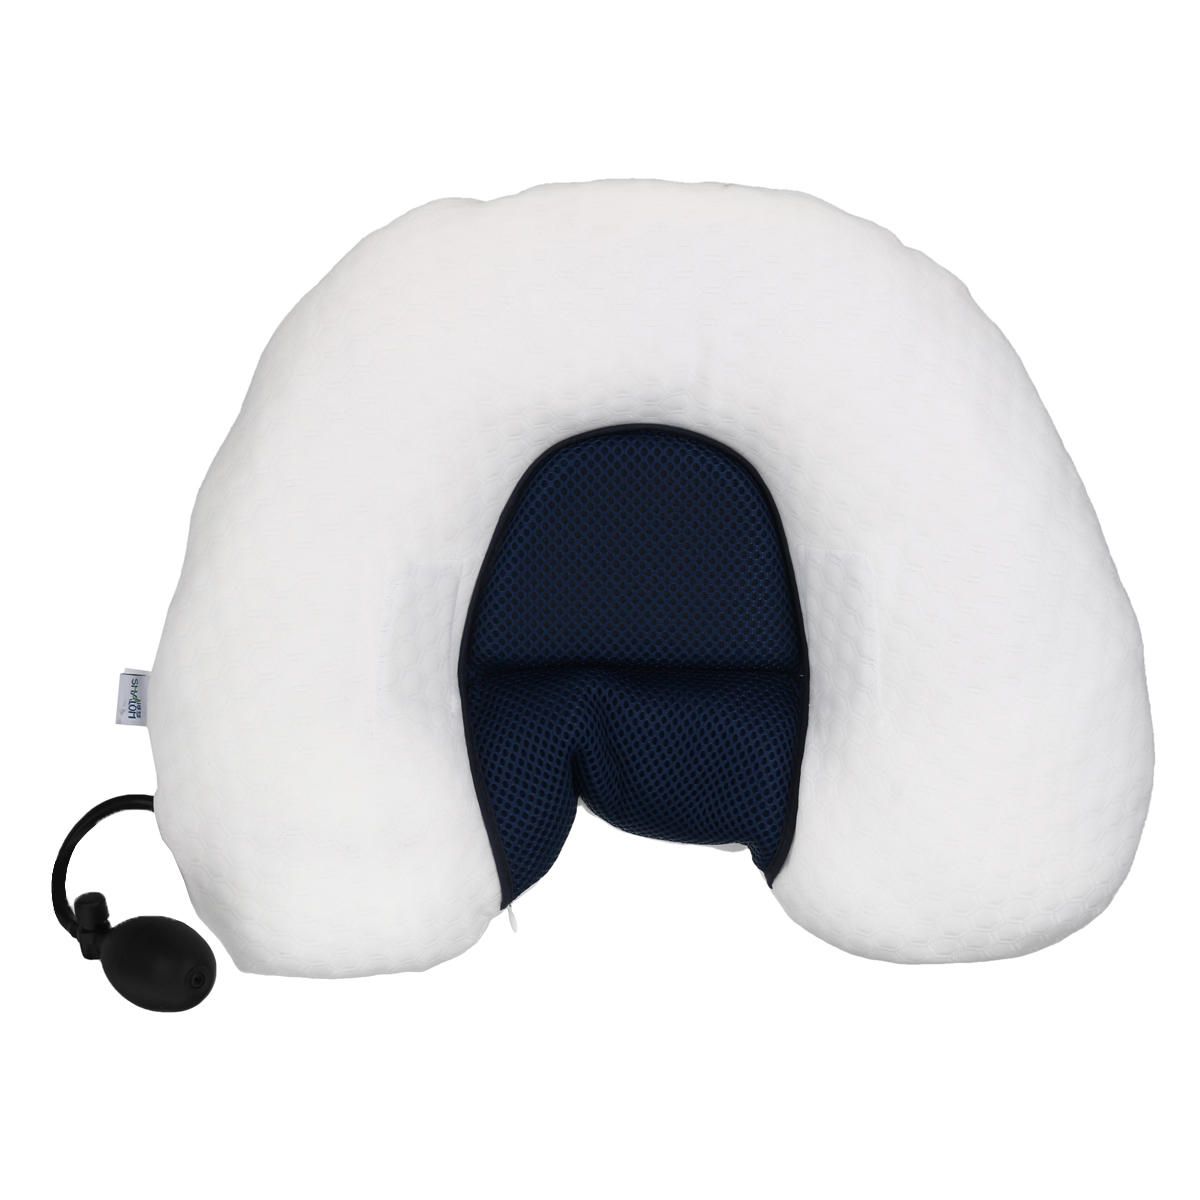 Inflatable Cervical Pain Bed Pillow Neck Support Ergonomic Orthopedic Travel Support Cushion